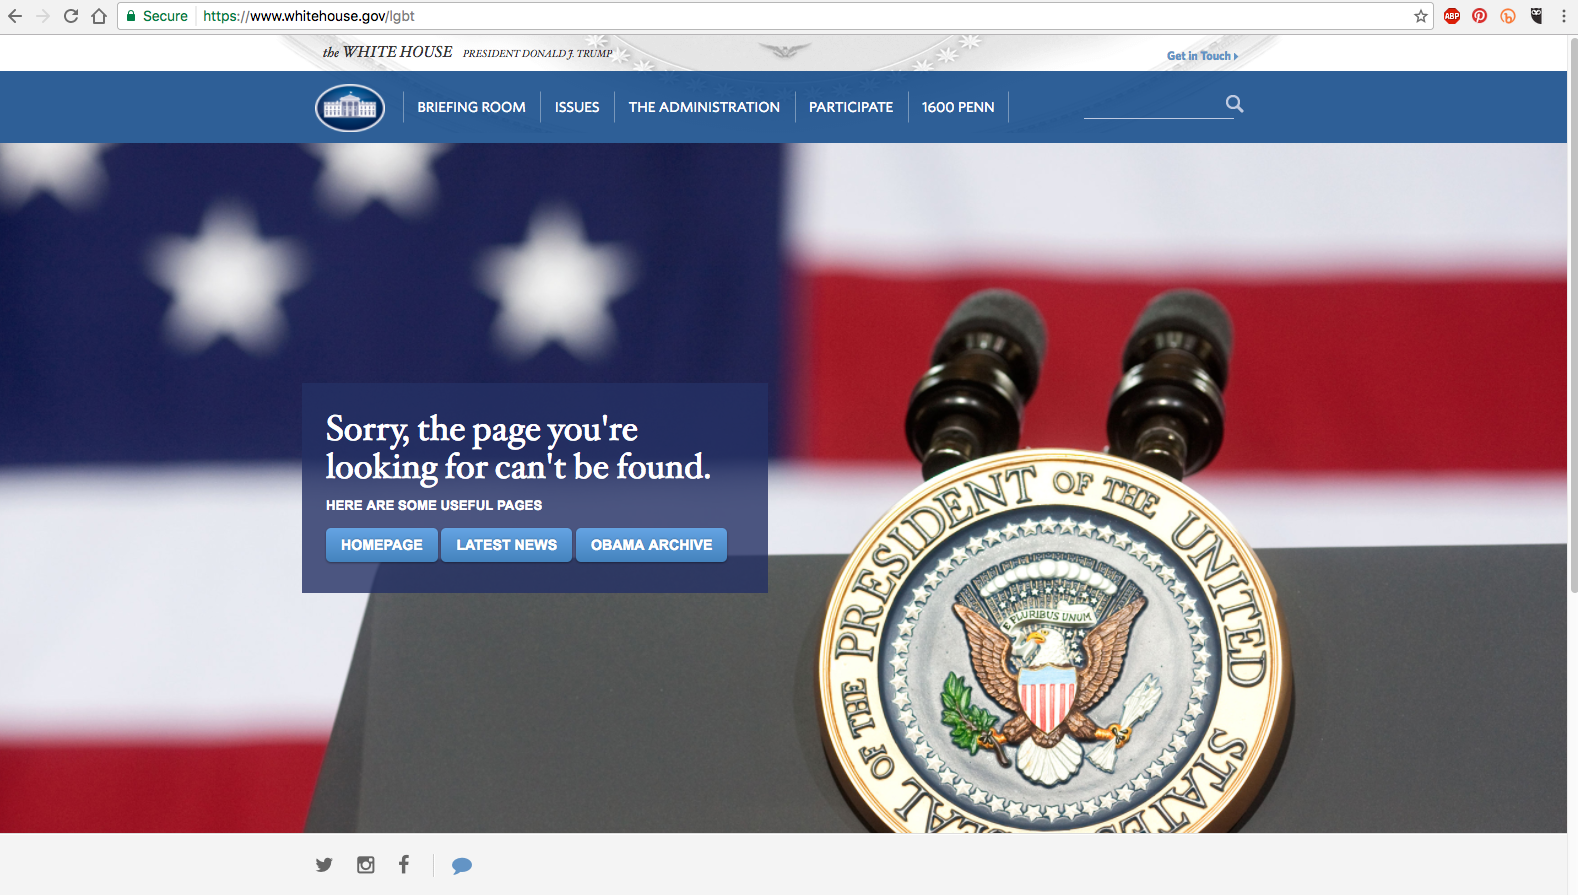 "|<image-caption></p> <p>The LGBT page does not exist on the new White House website.</p> <p></image-caption>|whitehouse.gov/lgbt"" title=""